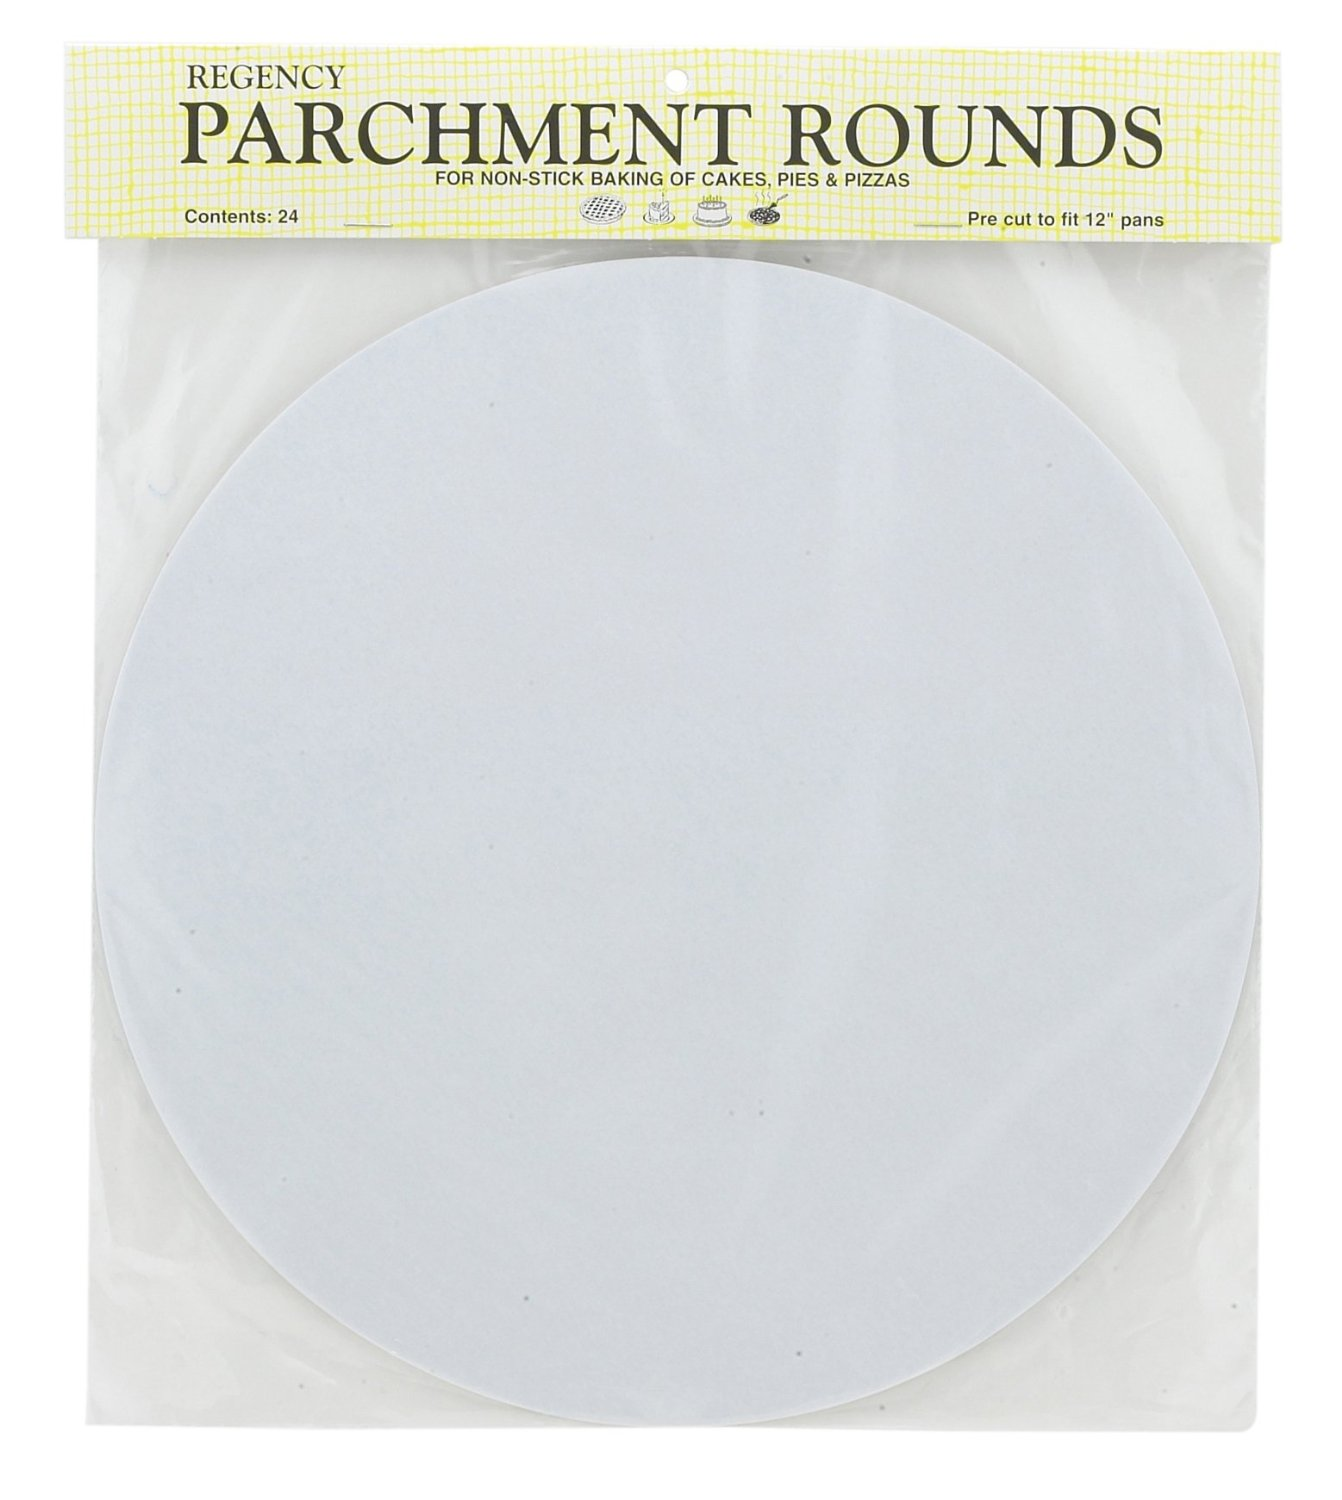 pre cut parchment paper Pre-cut to 12 x 16 sheets, they make your prep, baking and clean-up a breeze use them to roll-out dough, line baking sheets, decorate cookies and even wrap your finished creations for a beautiful gift.